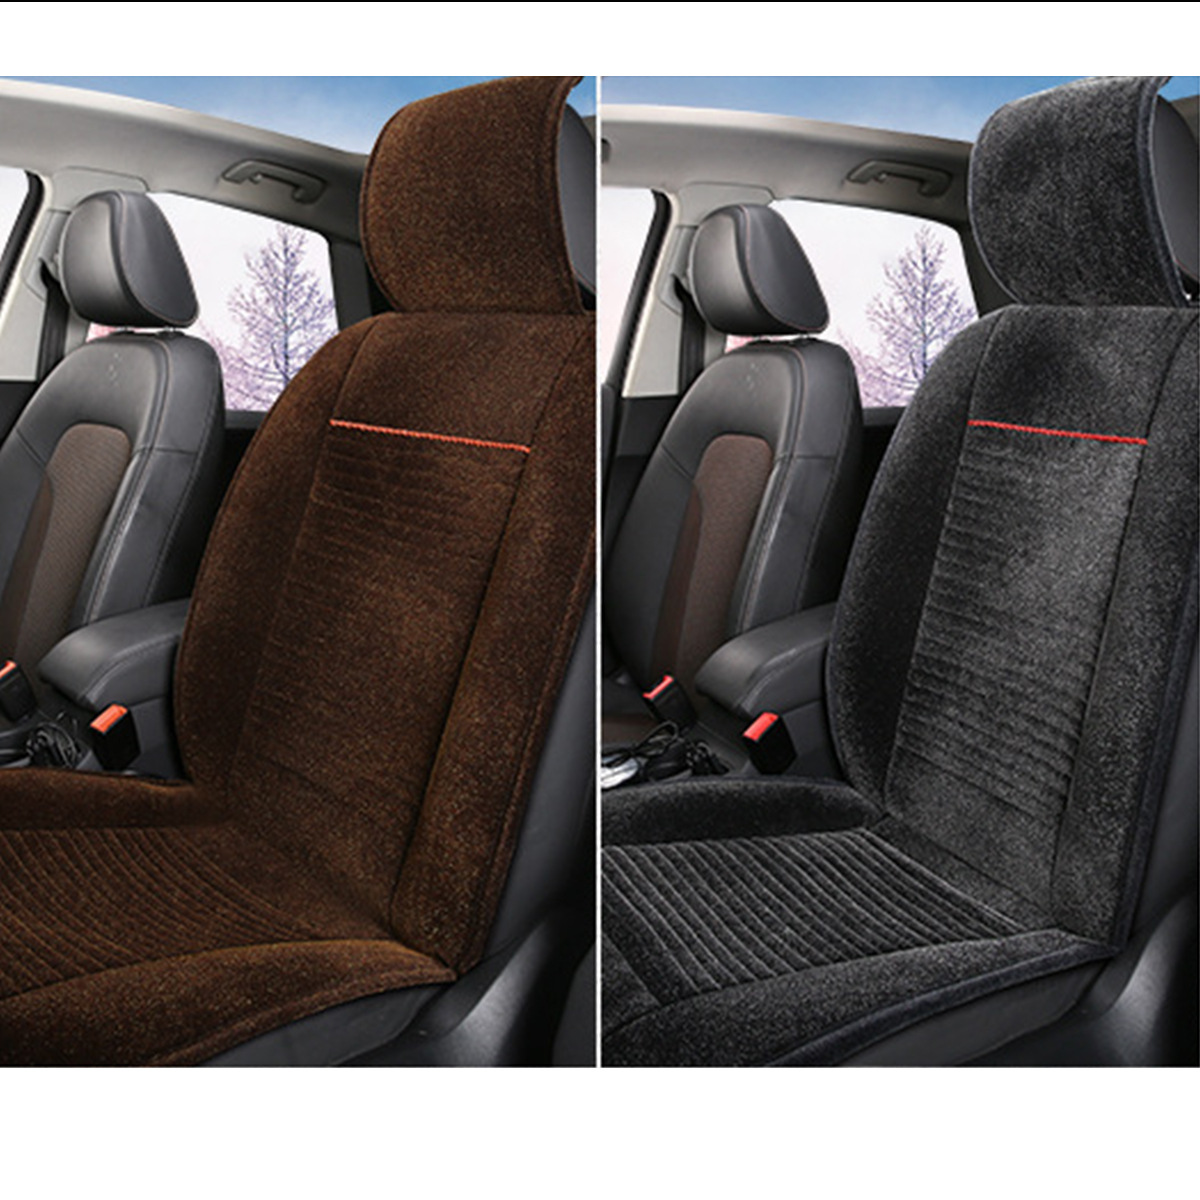 12V 24V Heated Avto Car Seat Cushion Cover Seat Heater Warmer Winter Cushion